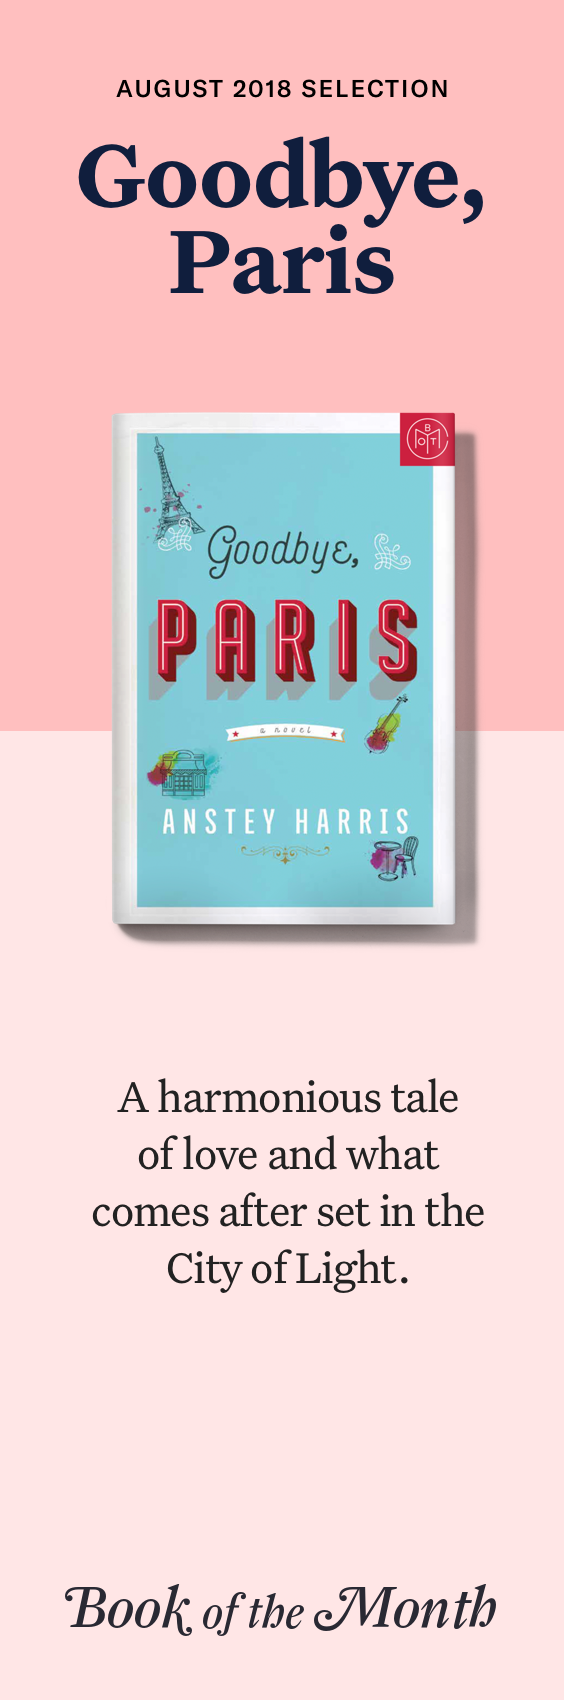 Goodbye Paris Is One Of The Best Books Of August 2018 Head To Bookofthemonth Com To Learn More And Get A Free Book With Book Suggestions Books I Love Books